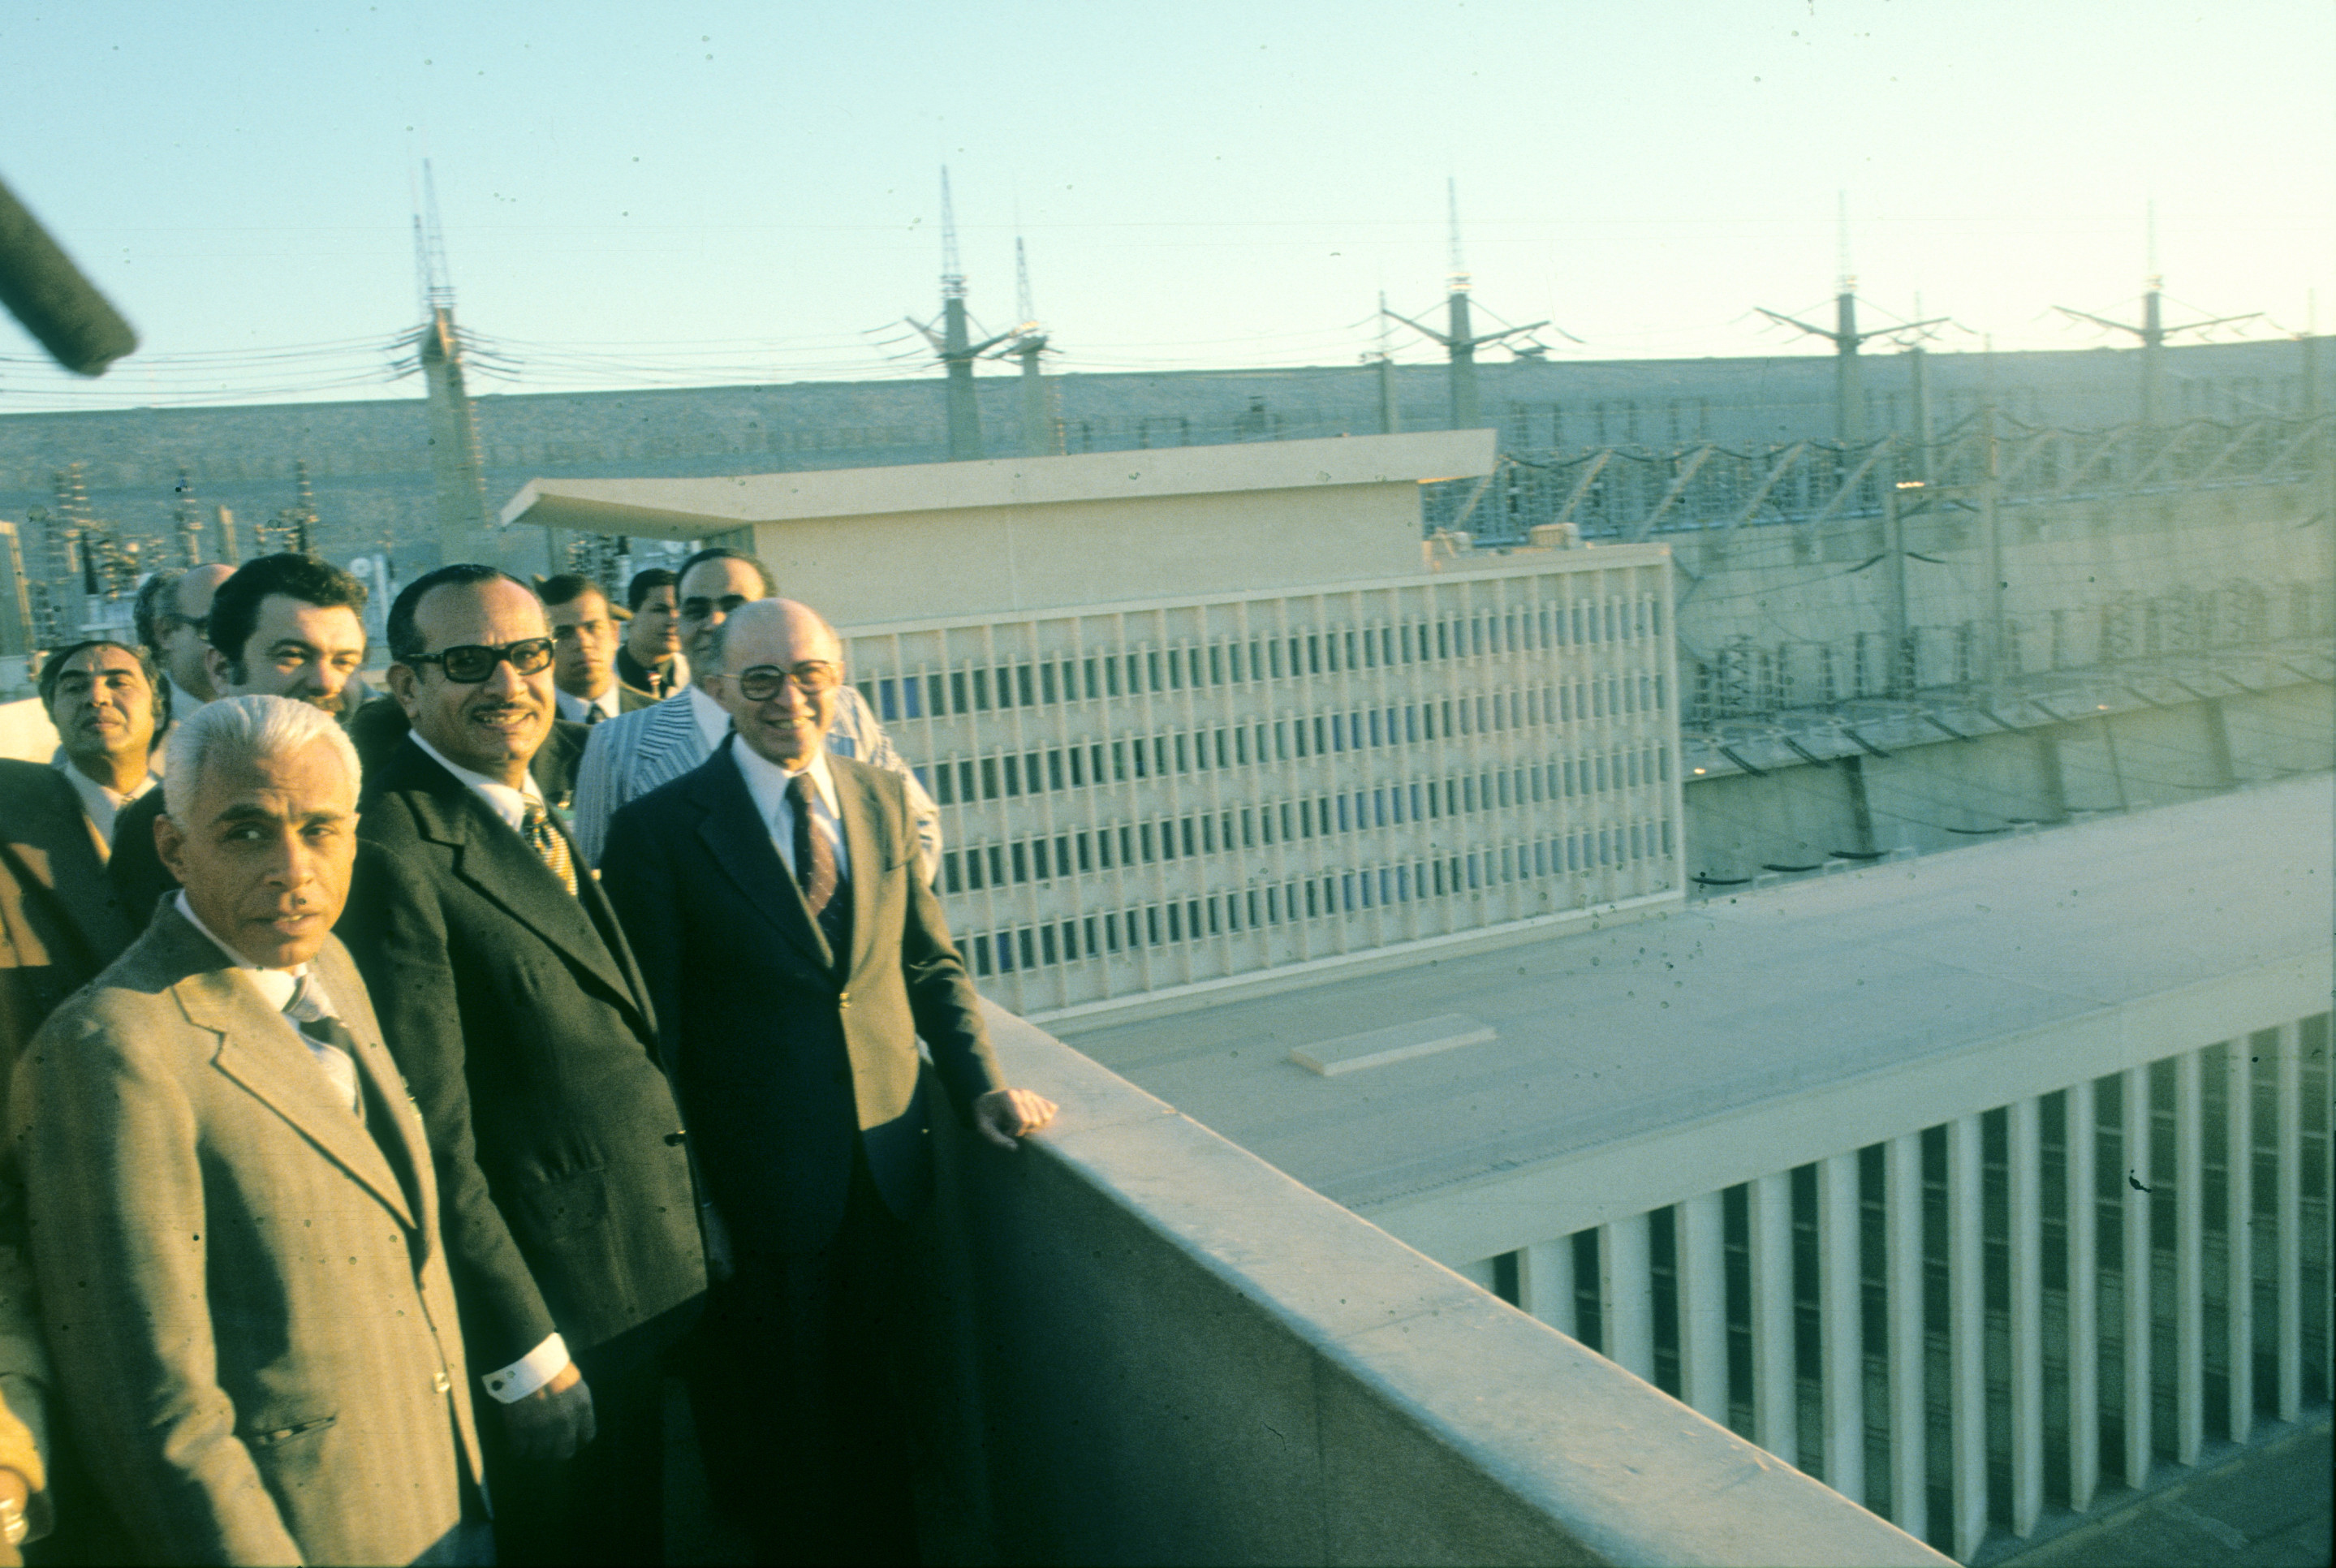 The 5th visit of PM Menahem Begin in Egypt to discuss the Peace Process between Egypt and Israel. Photo shows: On way to visit the Assuan Hidroelectric Power Station 1977/12/26 Copyright © IPPA 80260-001-85 Photo by [010] Hadani Dan